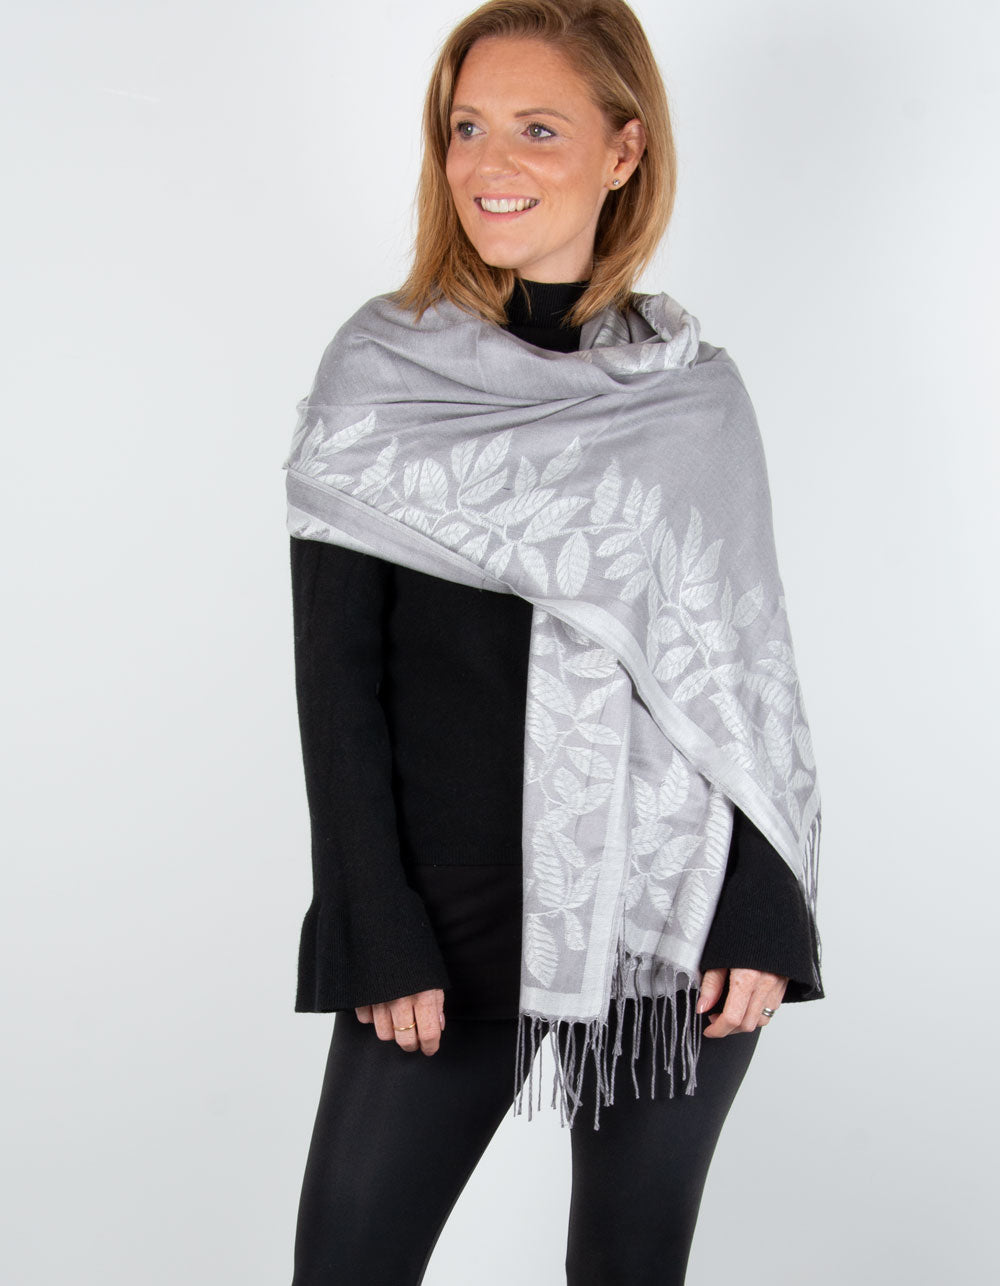 an image showing a silver leaf print pashmina